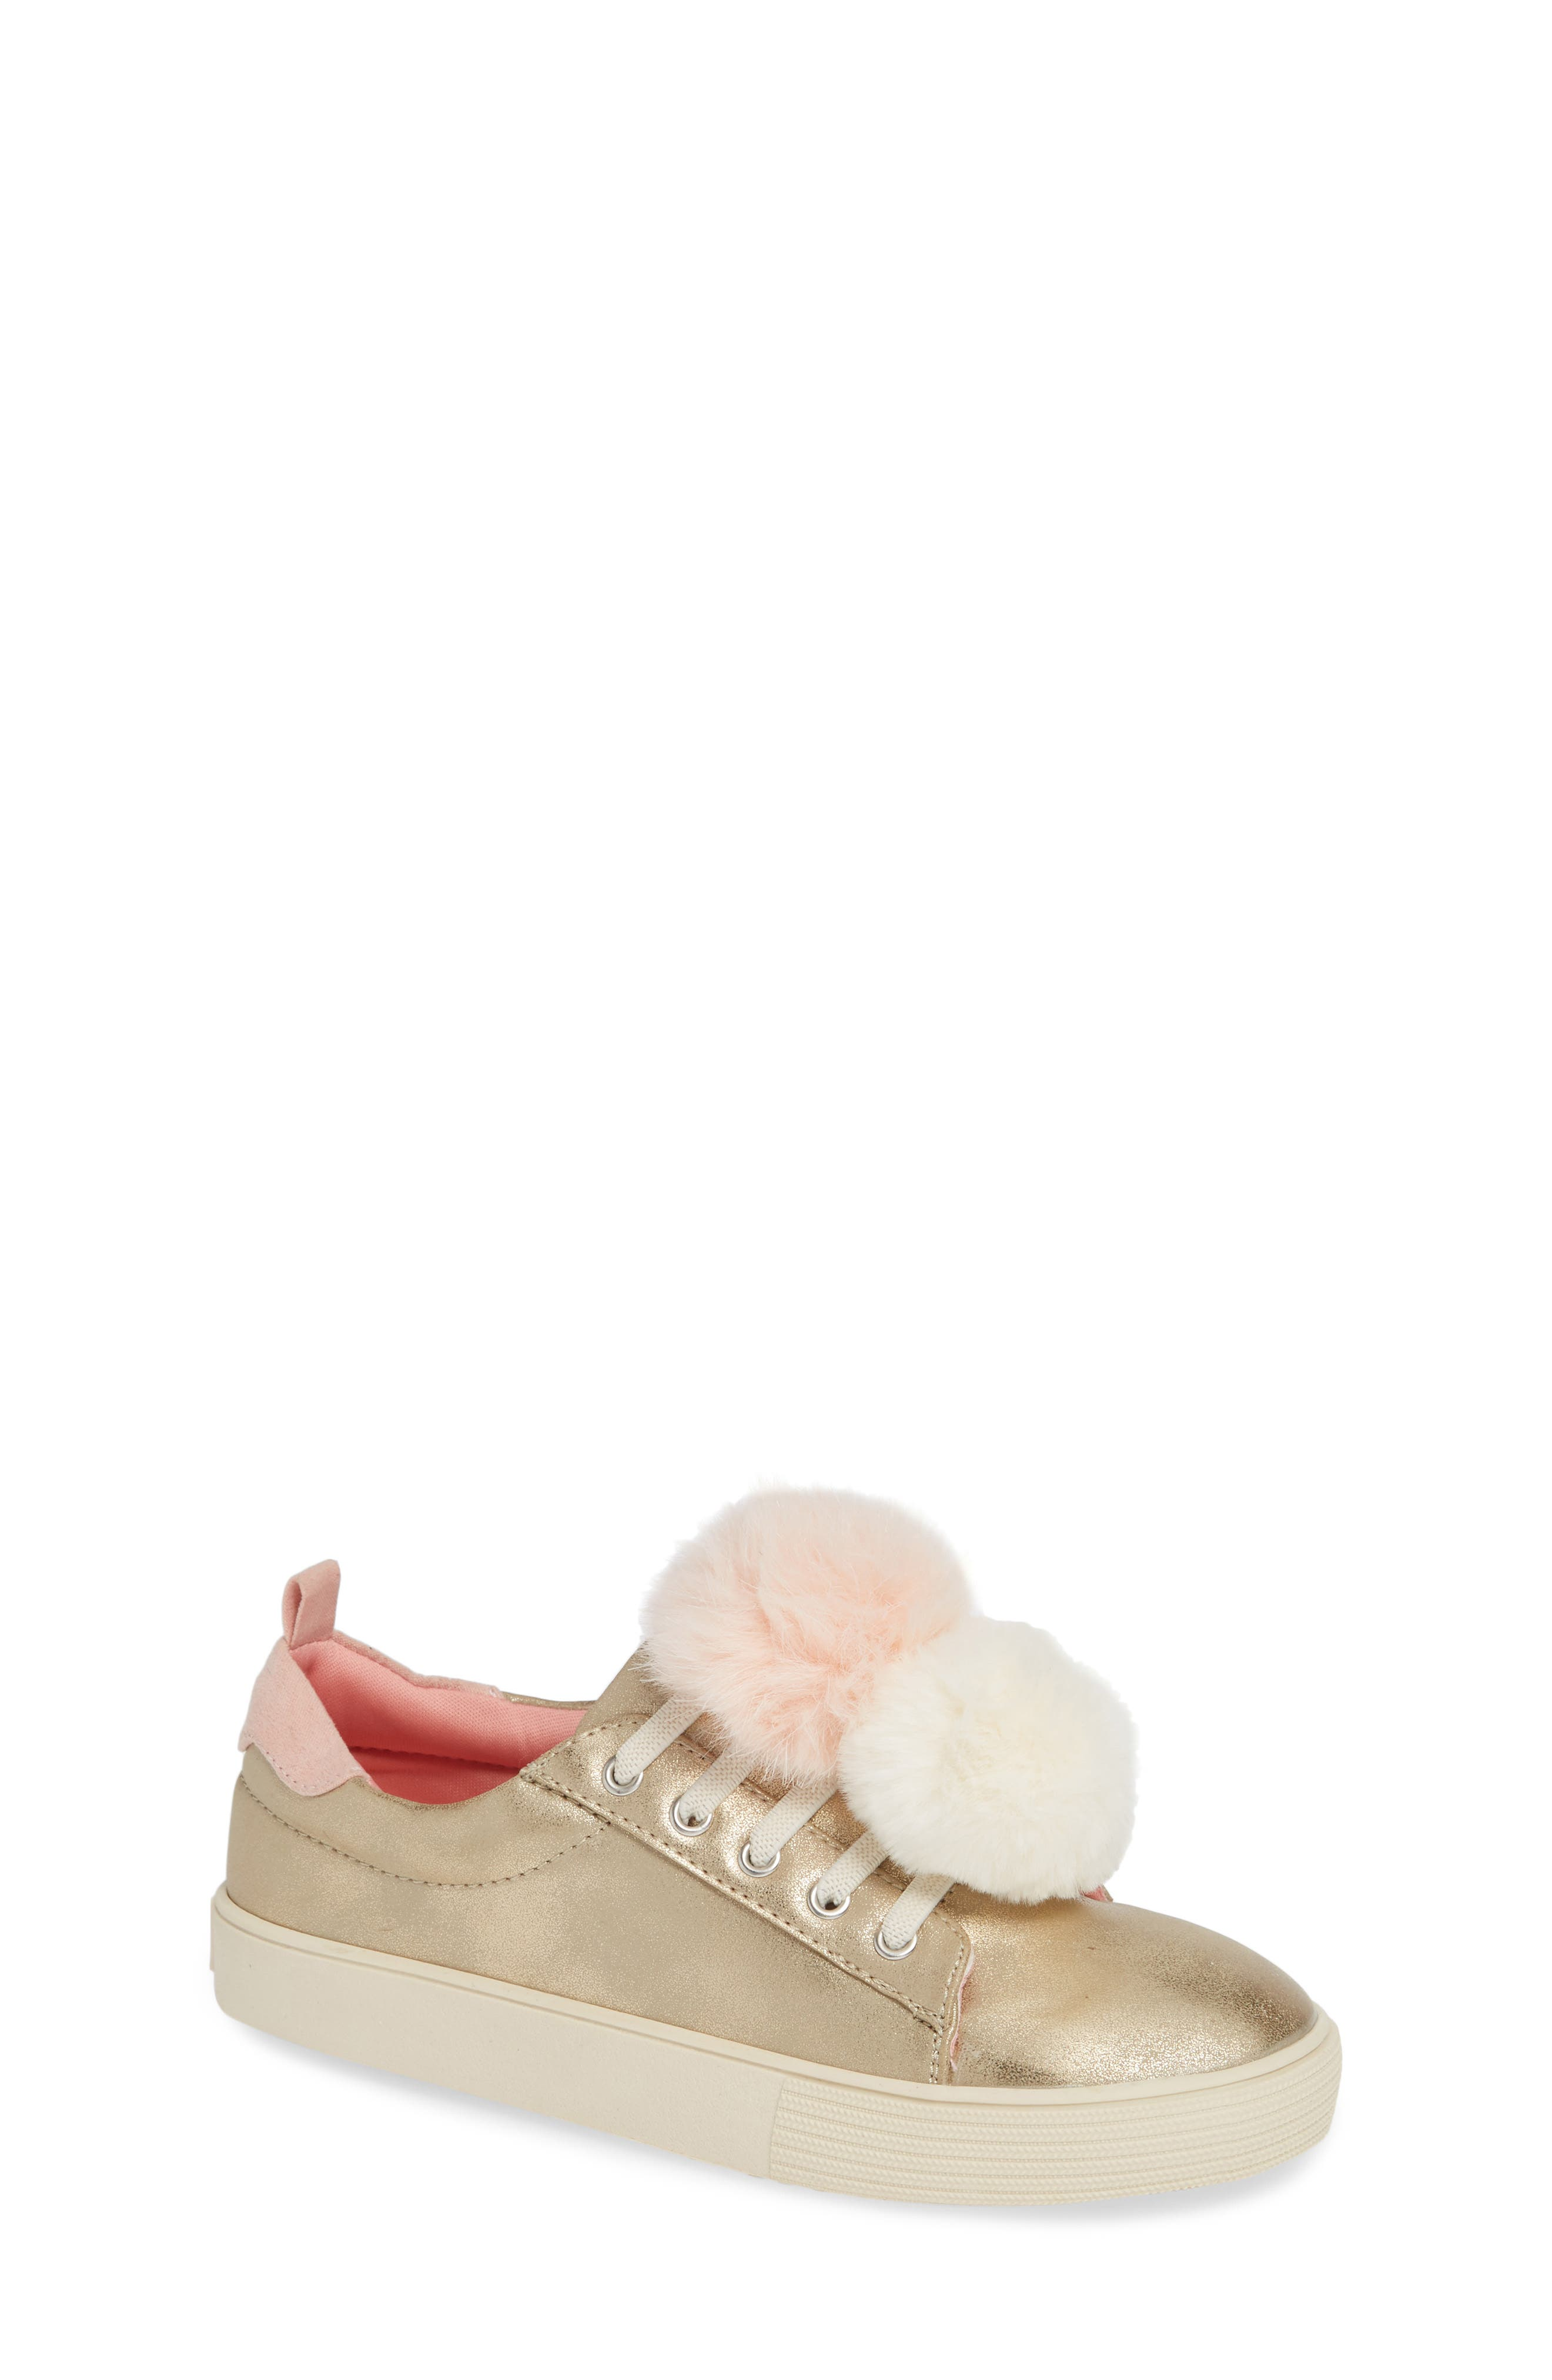 Millie Metallic Pom Sneaker,                             Main thumbnail 1, color,                             GOLD METALLIC FAUX LEATHER